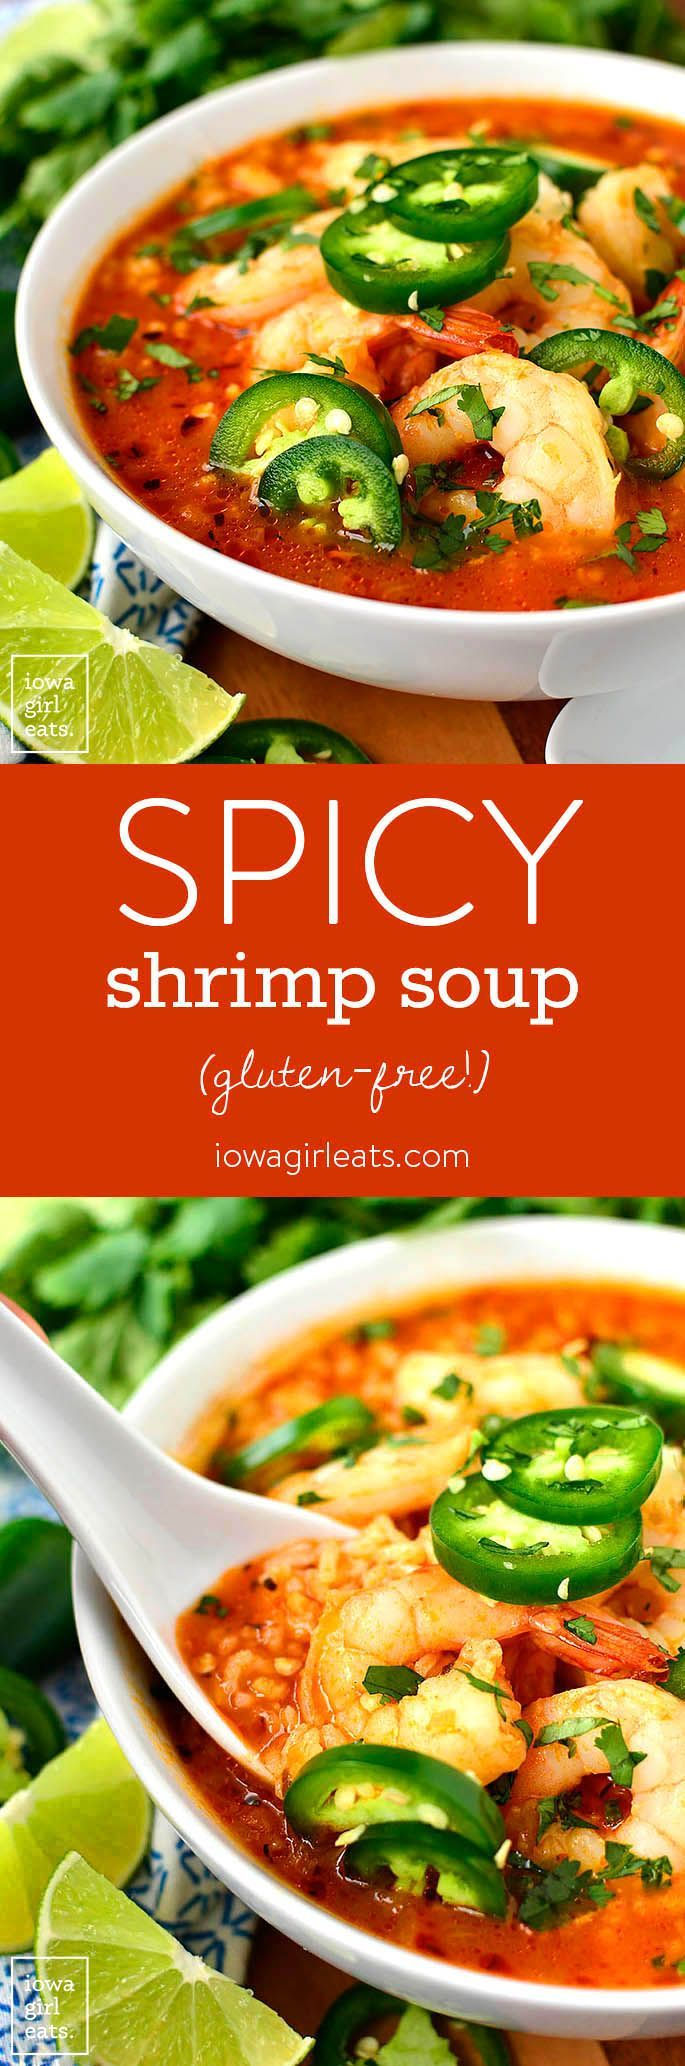 Spicy Shrimp Soup is a copycat recipe from our favorite Ecuadorian restaurant. Spicy, garlicky, and comforting, you will eat bowl after bowl of this easy soup recipe!  | iowagirleats.com #glutenfree